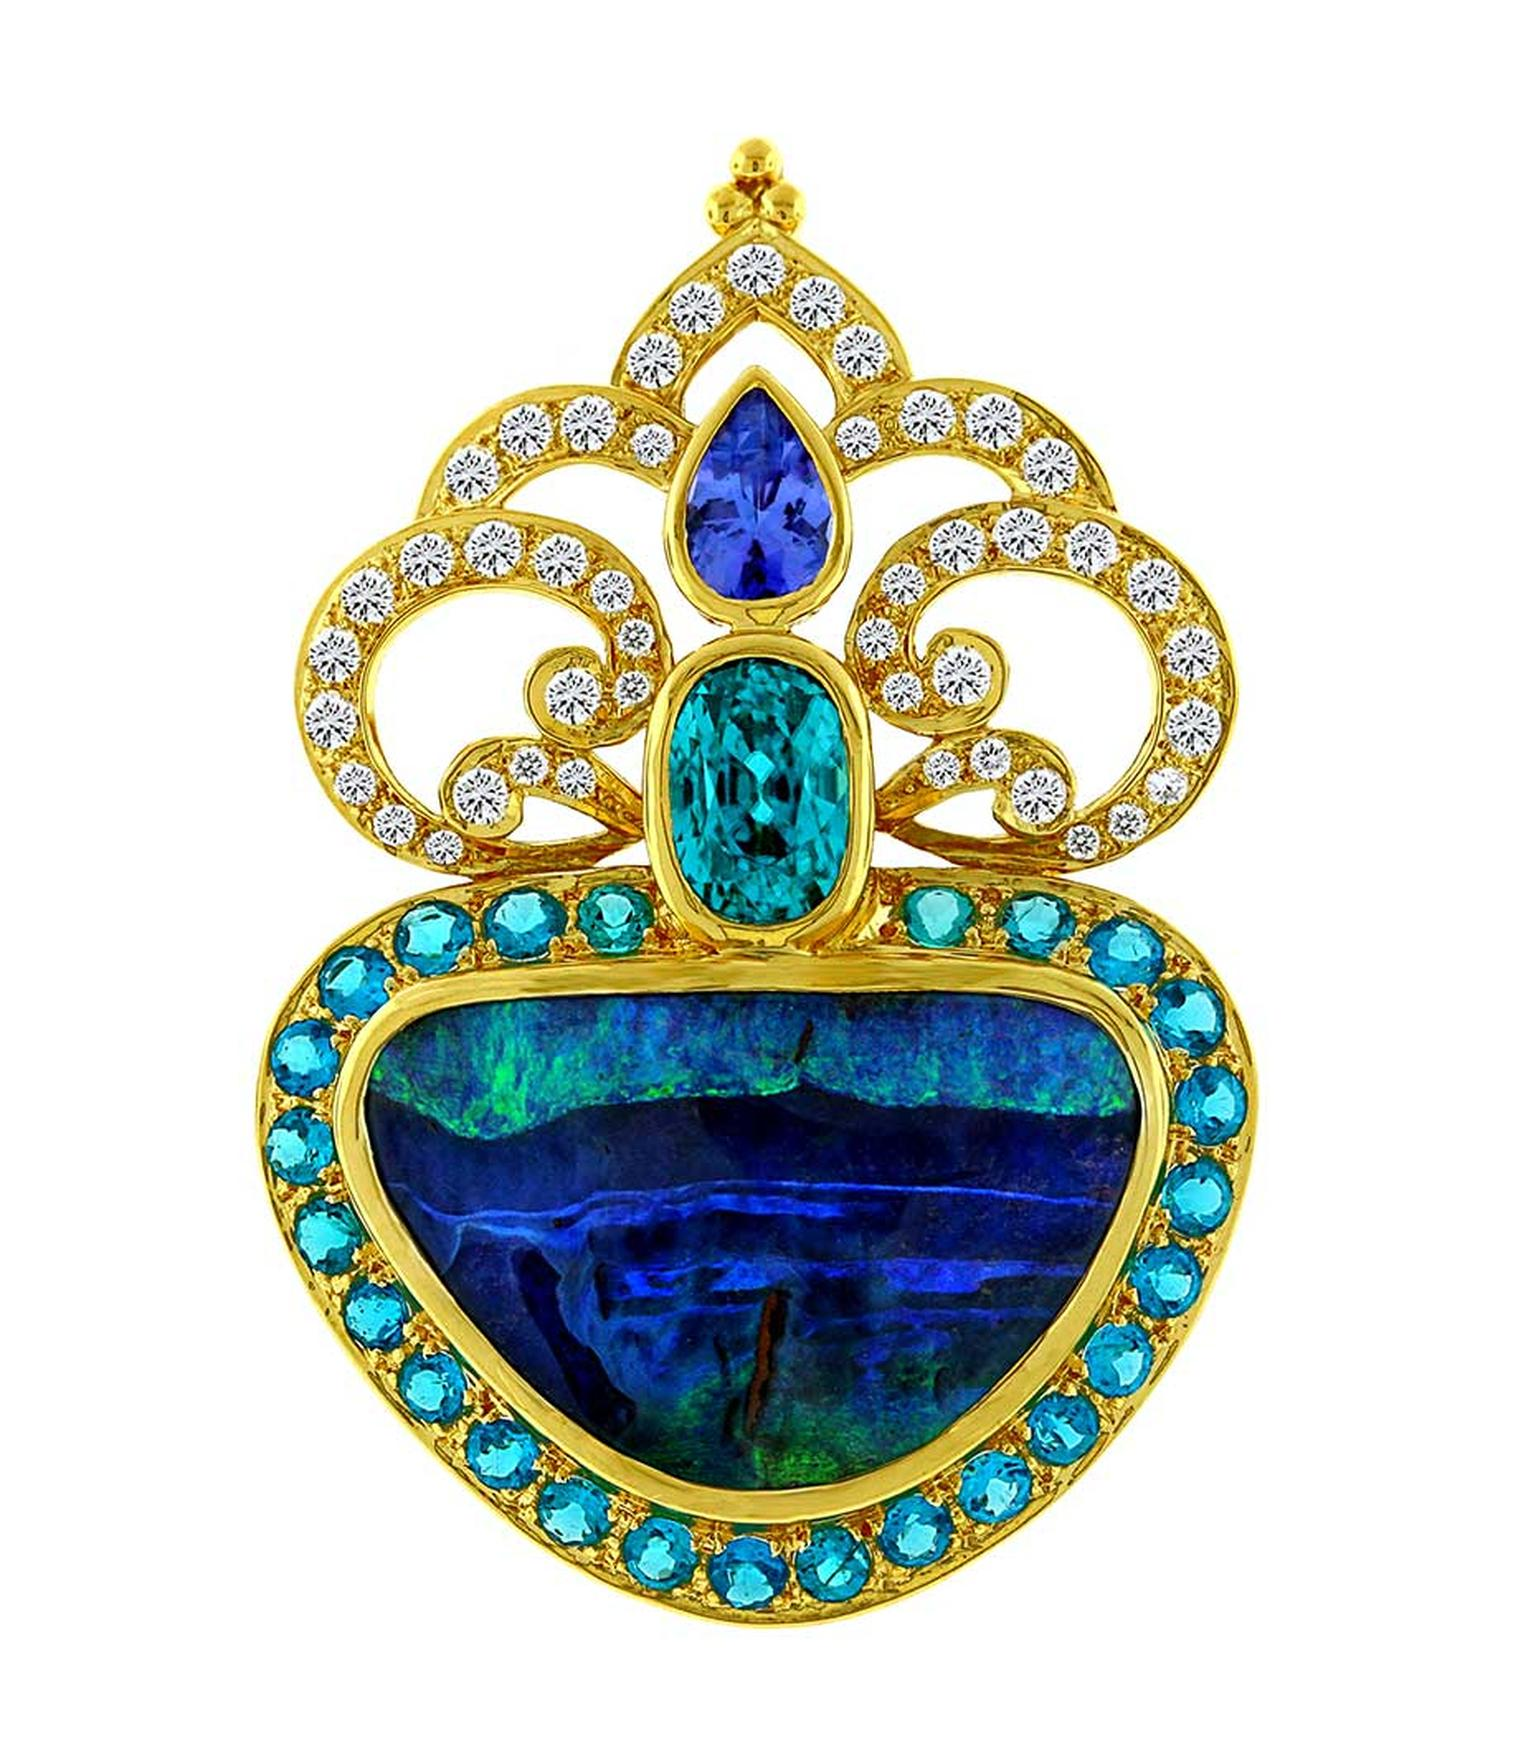 Paula Crevoshay will be showing her breathtaking designs at the Couture Show Las Vegas, including this pendant set with a 22.30ct opal, tanzanites, apatites, blue zircon and diamonds